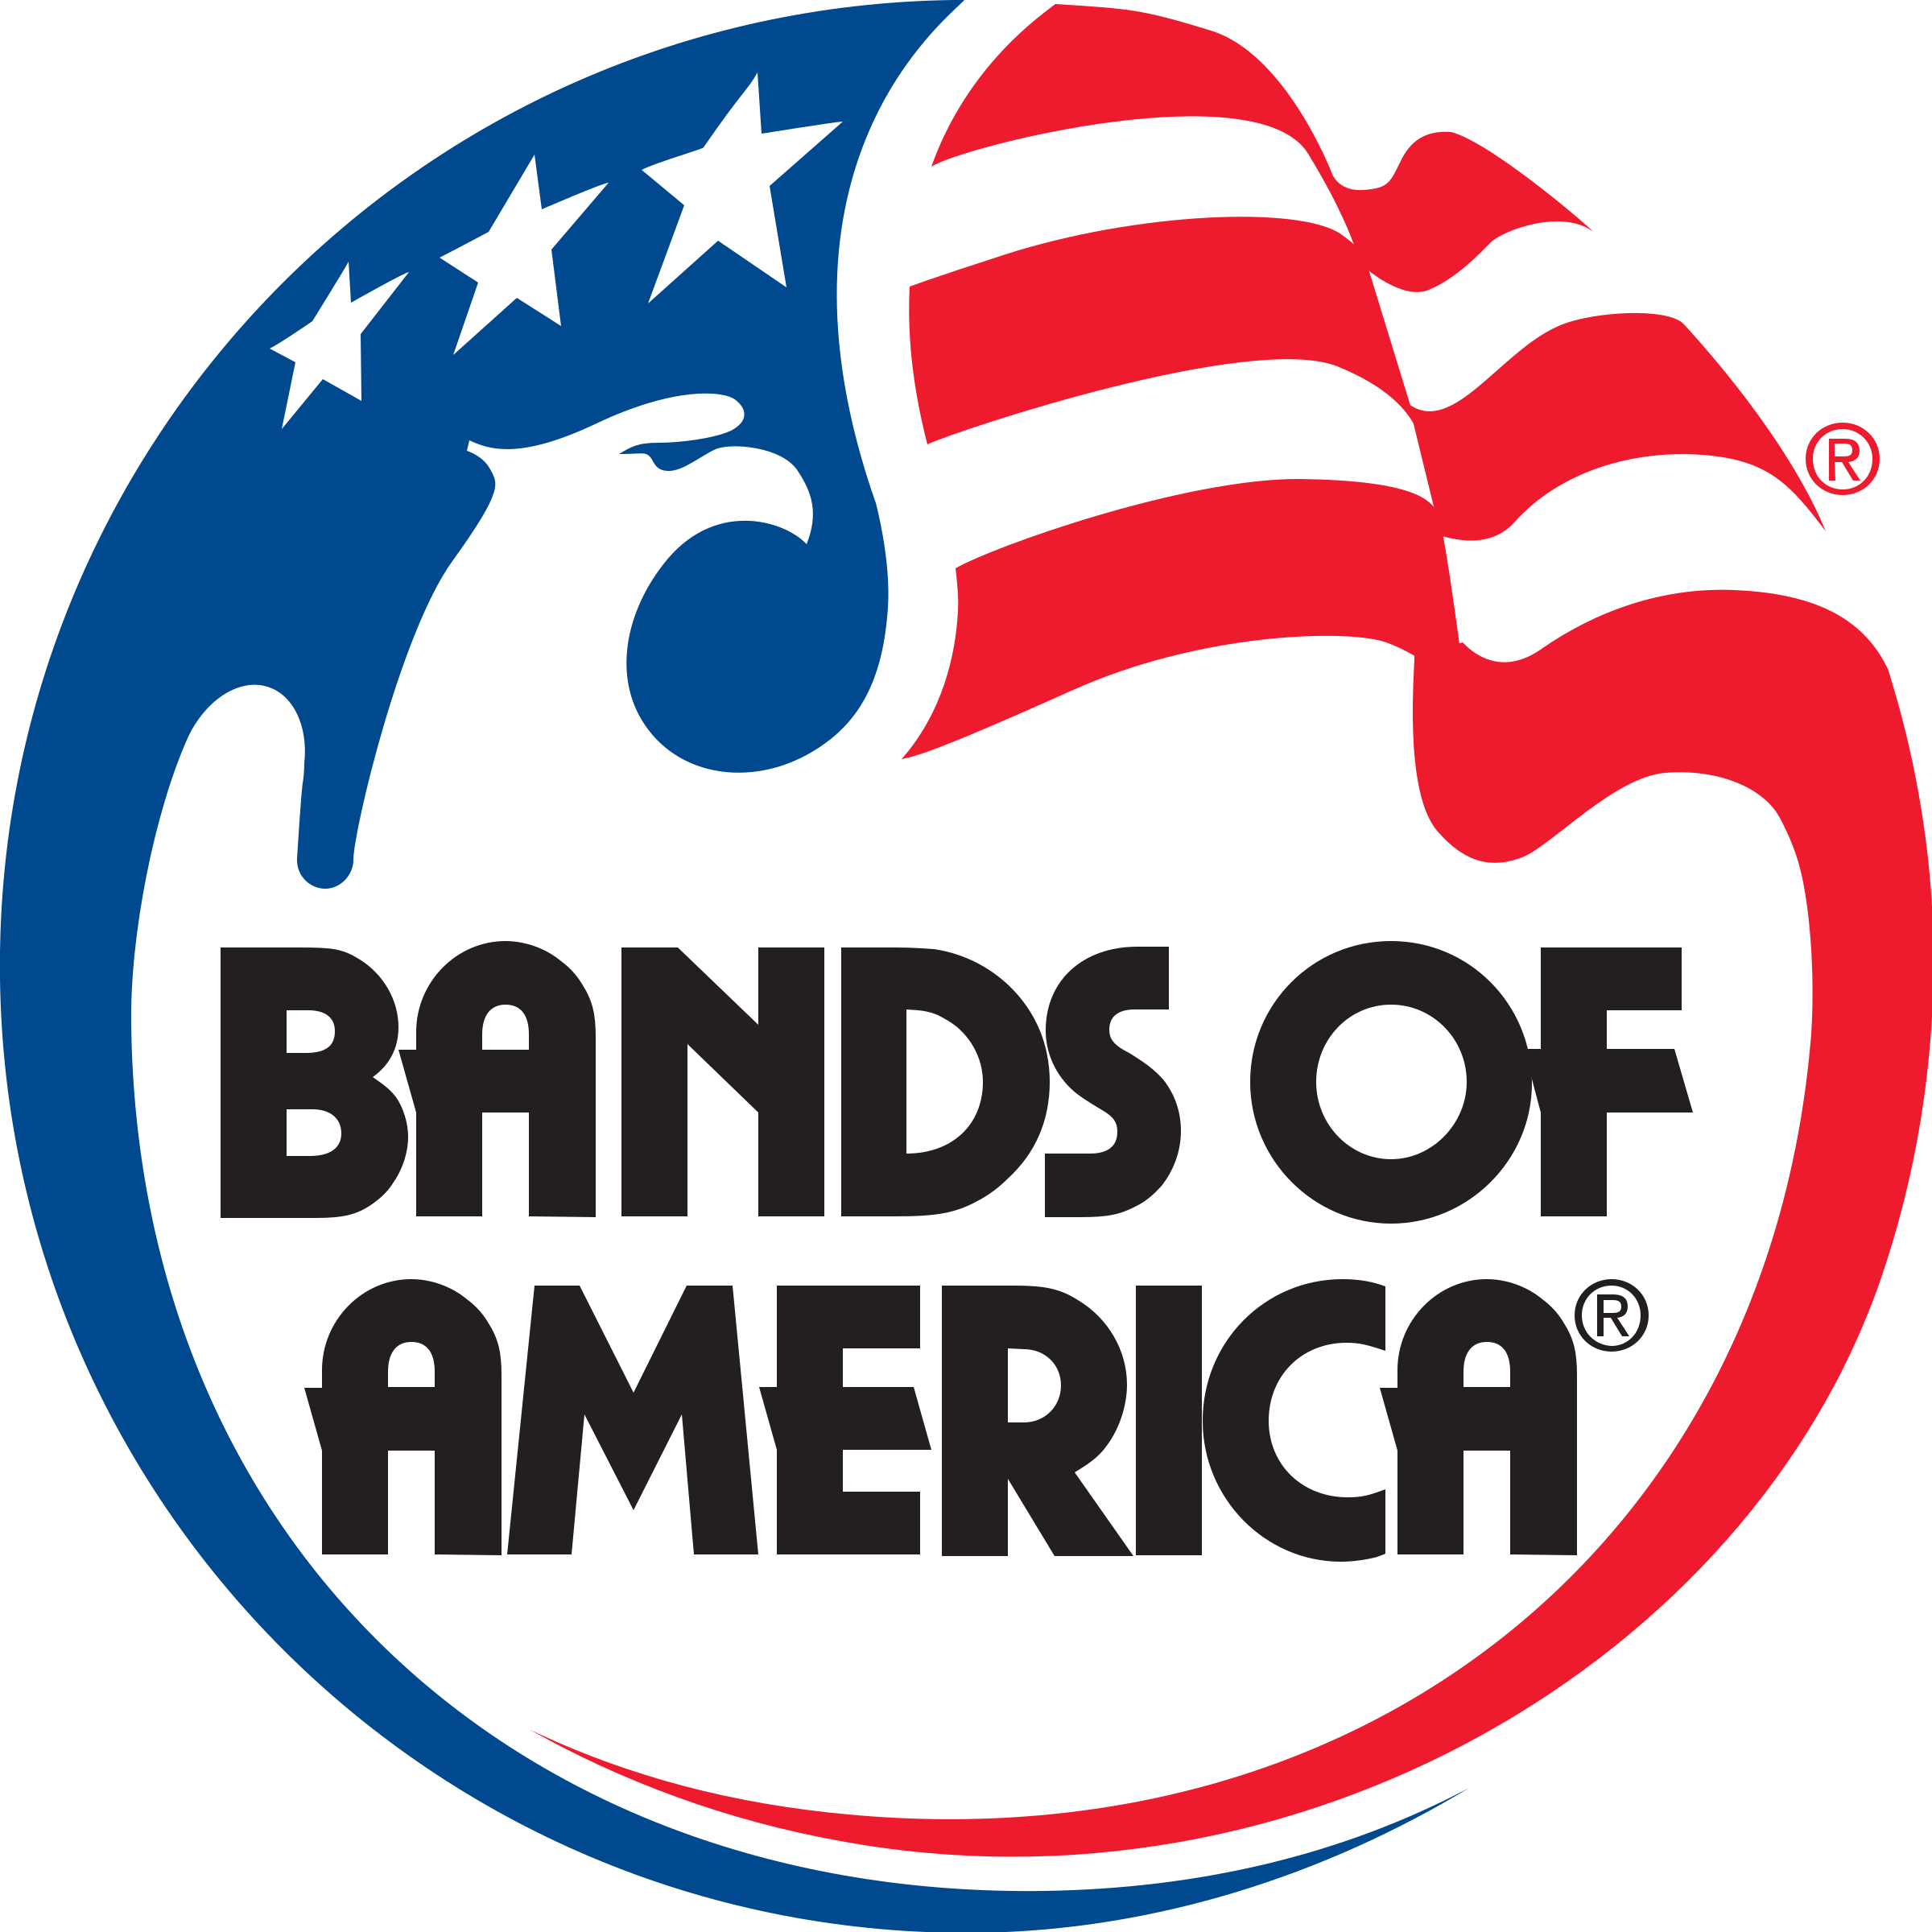 one as pilots band logo wikipedia bands svg twenty vector official of wiki